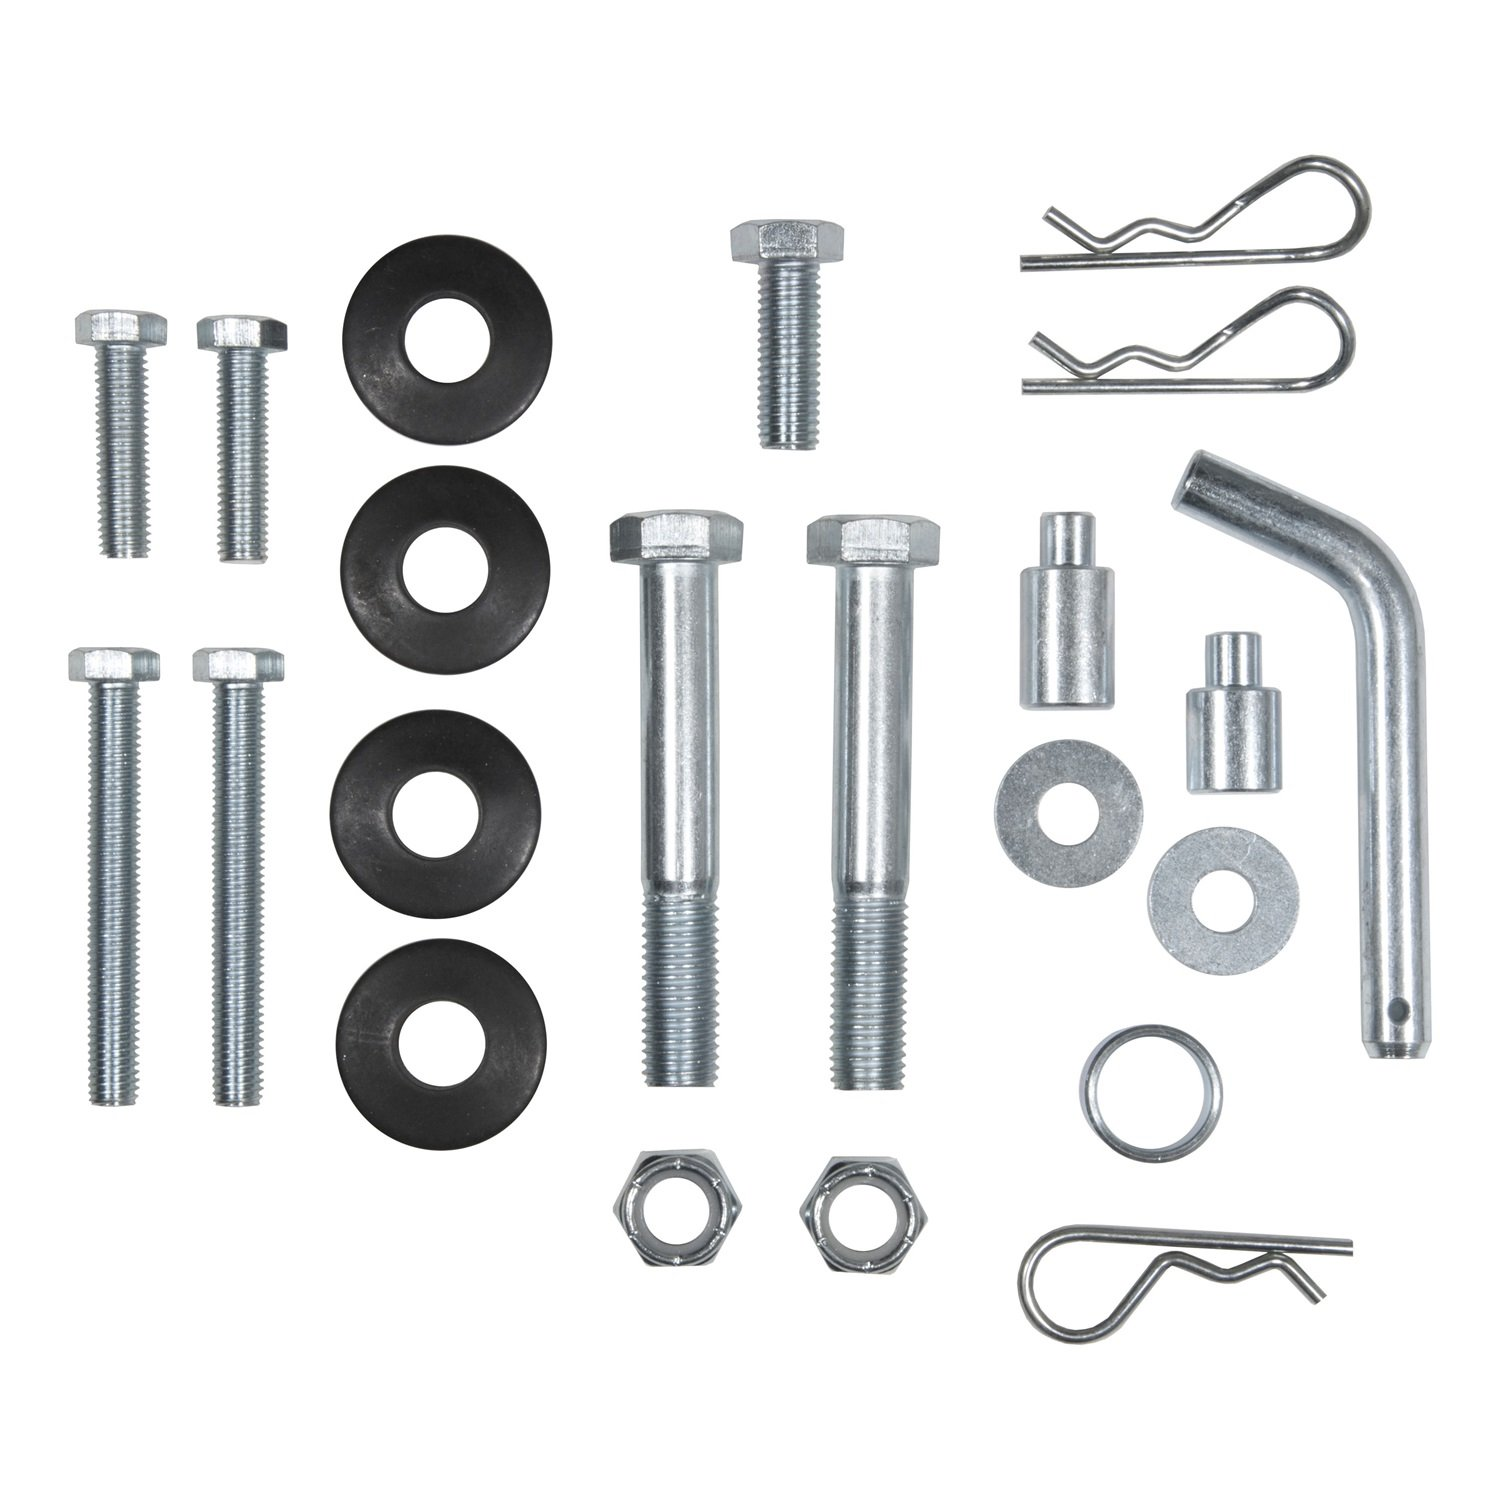 CURT 17350 Bolt Kit For Trunnion Bar Weight Distribution Curt Manufacturing